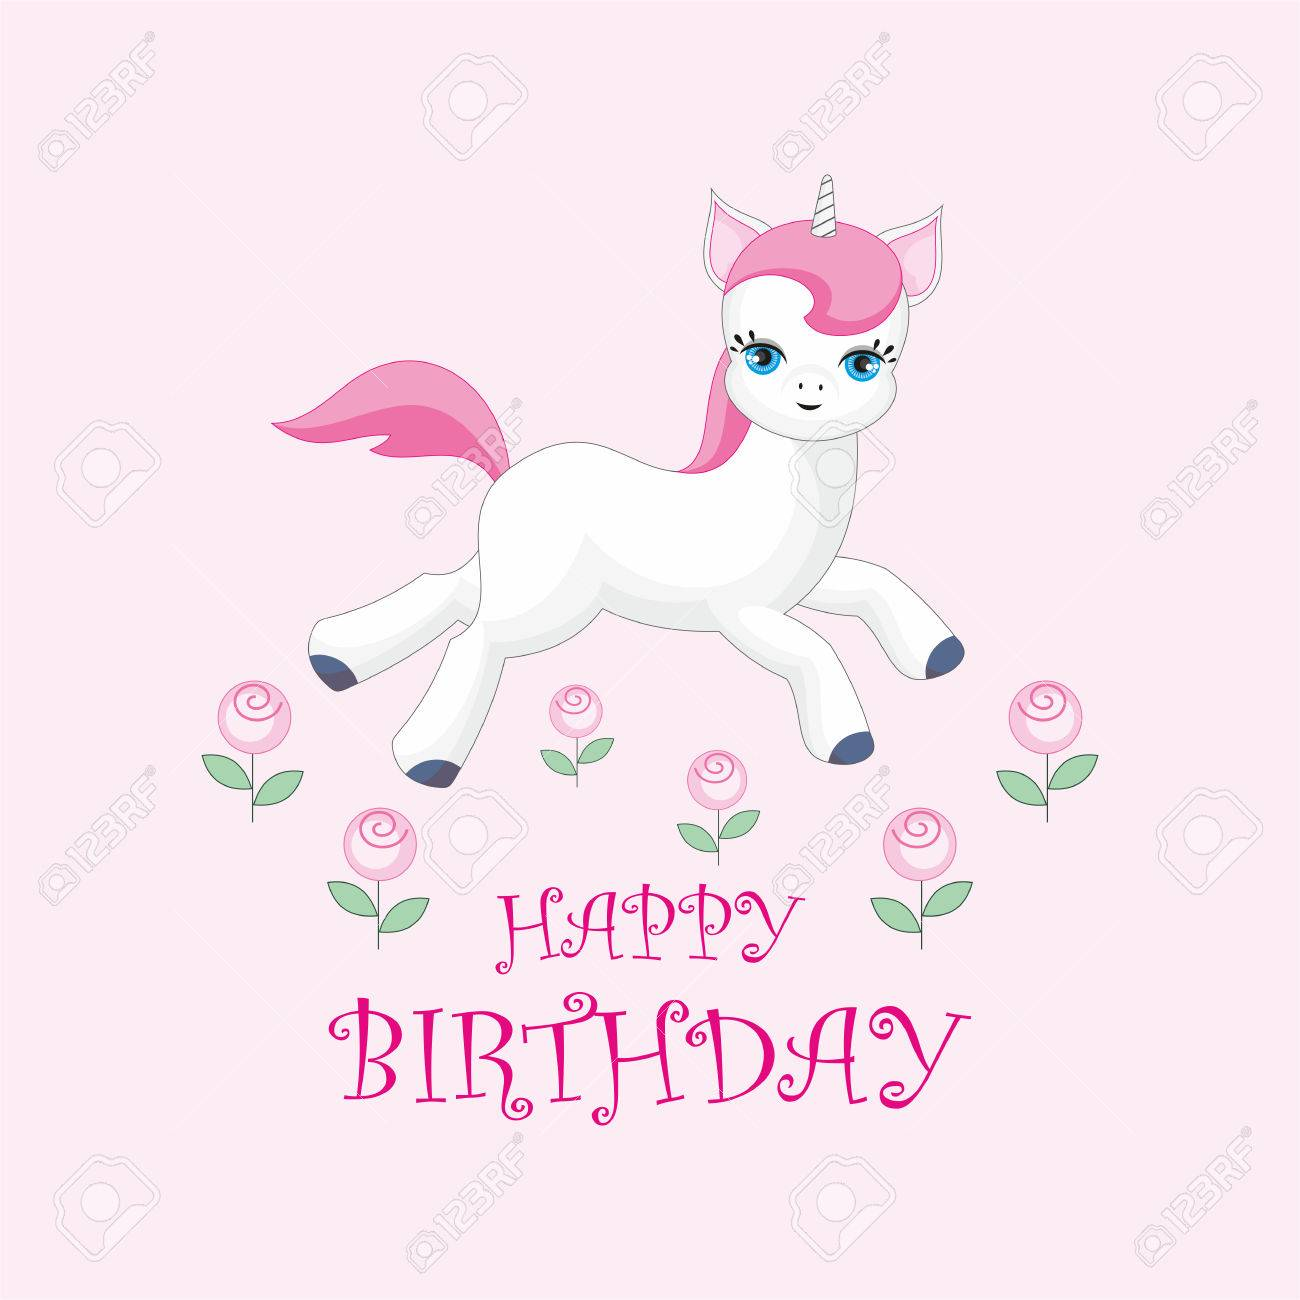 Happy Birthday Greeting Card With The Image Of Cute Unicorn Colorful Vector Illustration Stock